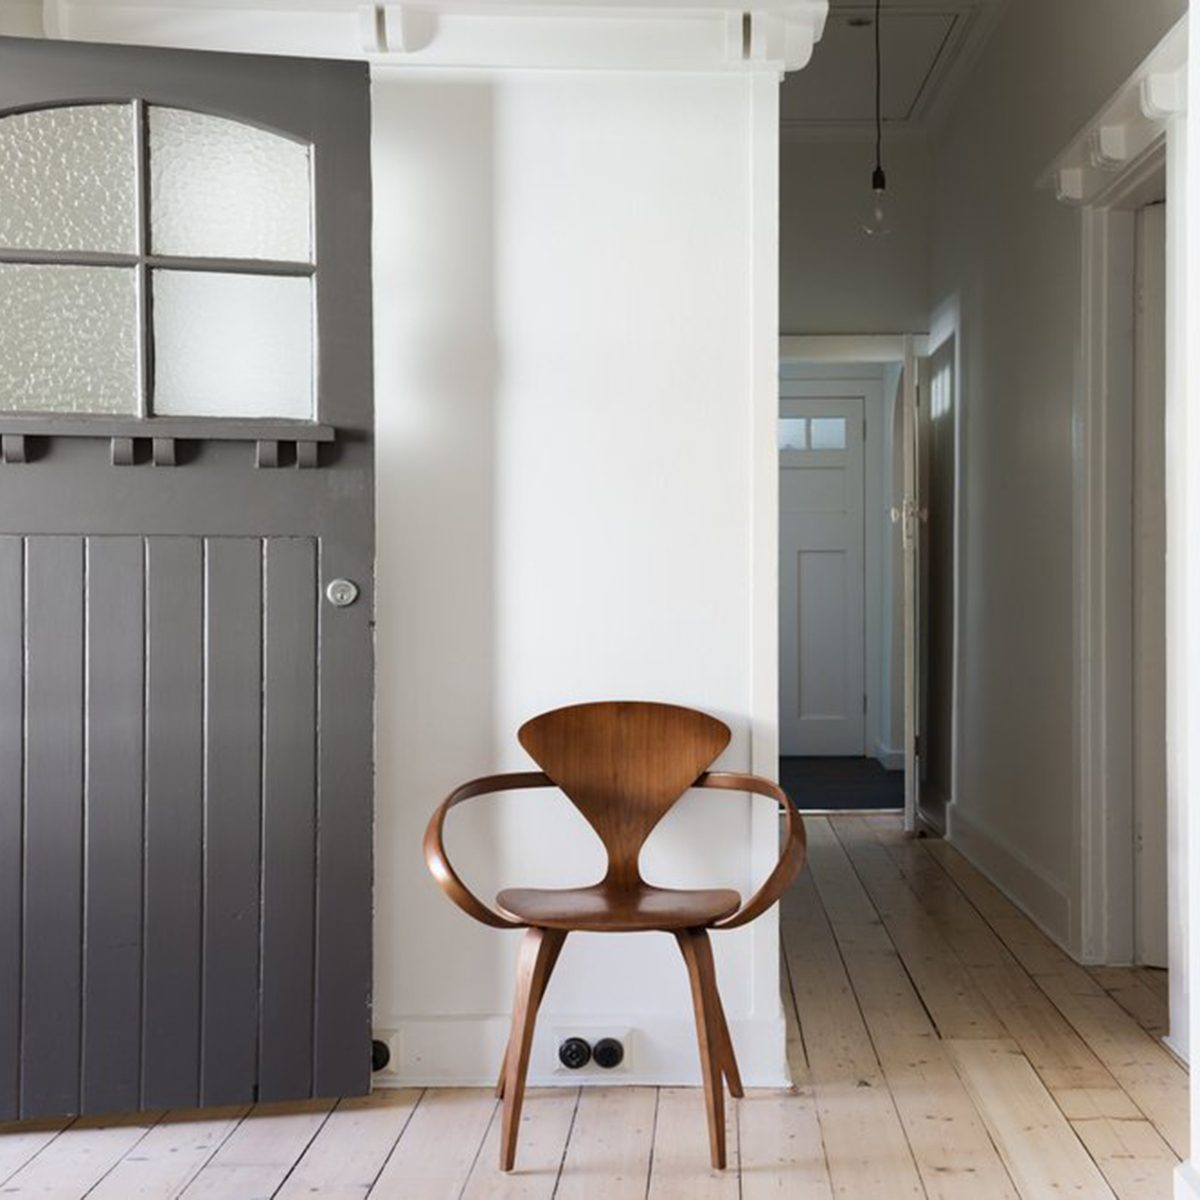 Bare hallway and room with one chair